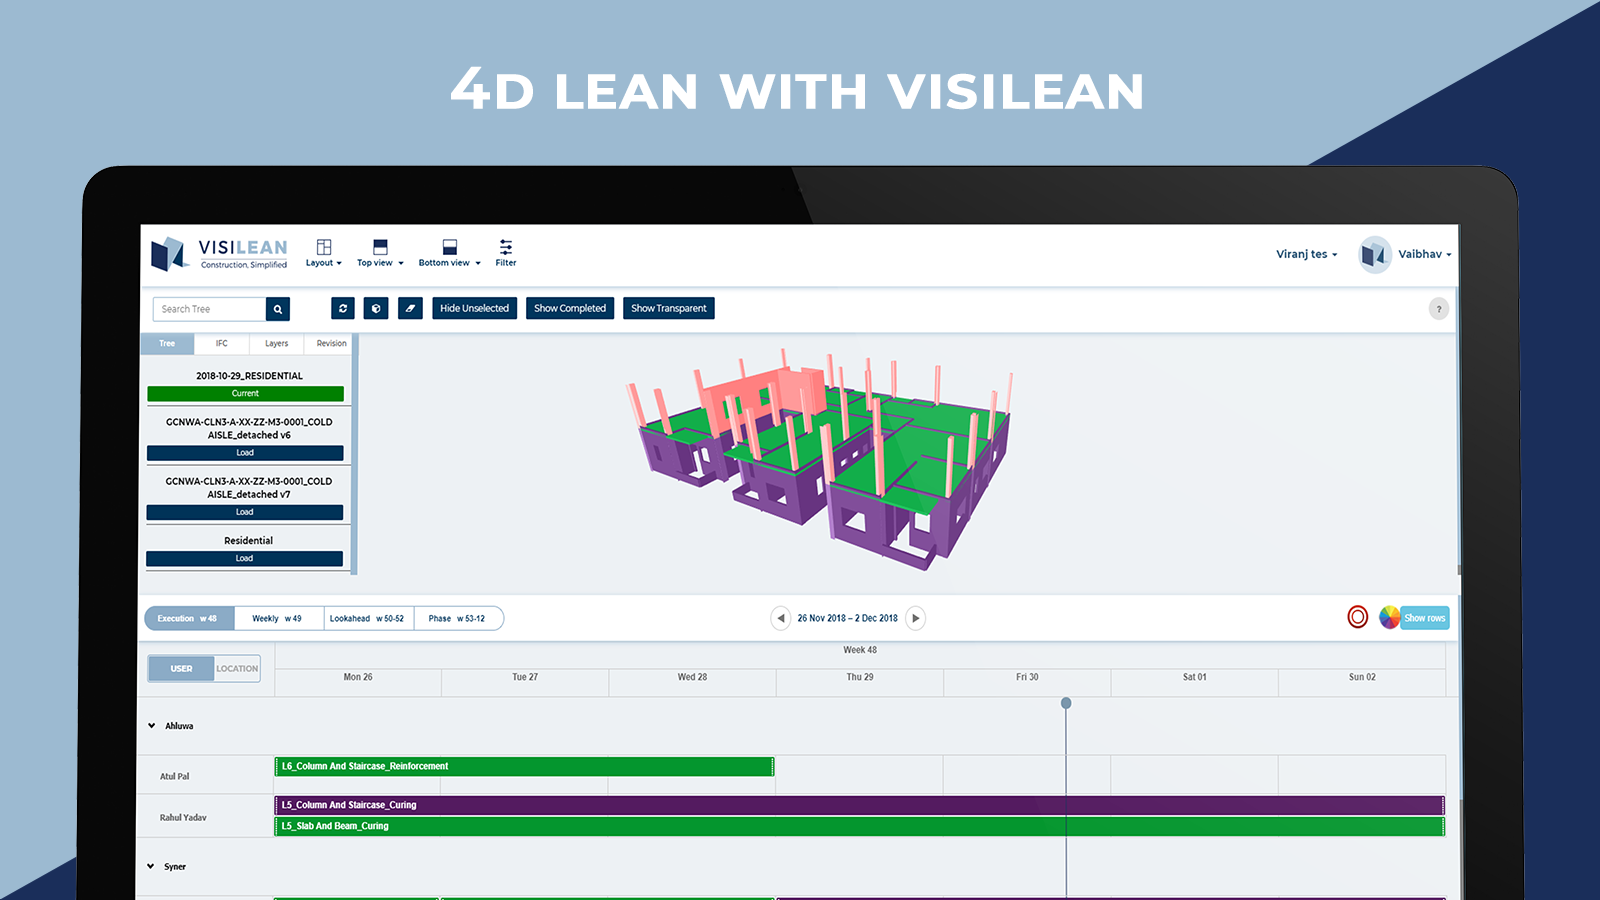 4D LEAN WITH VISILEAN